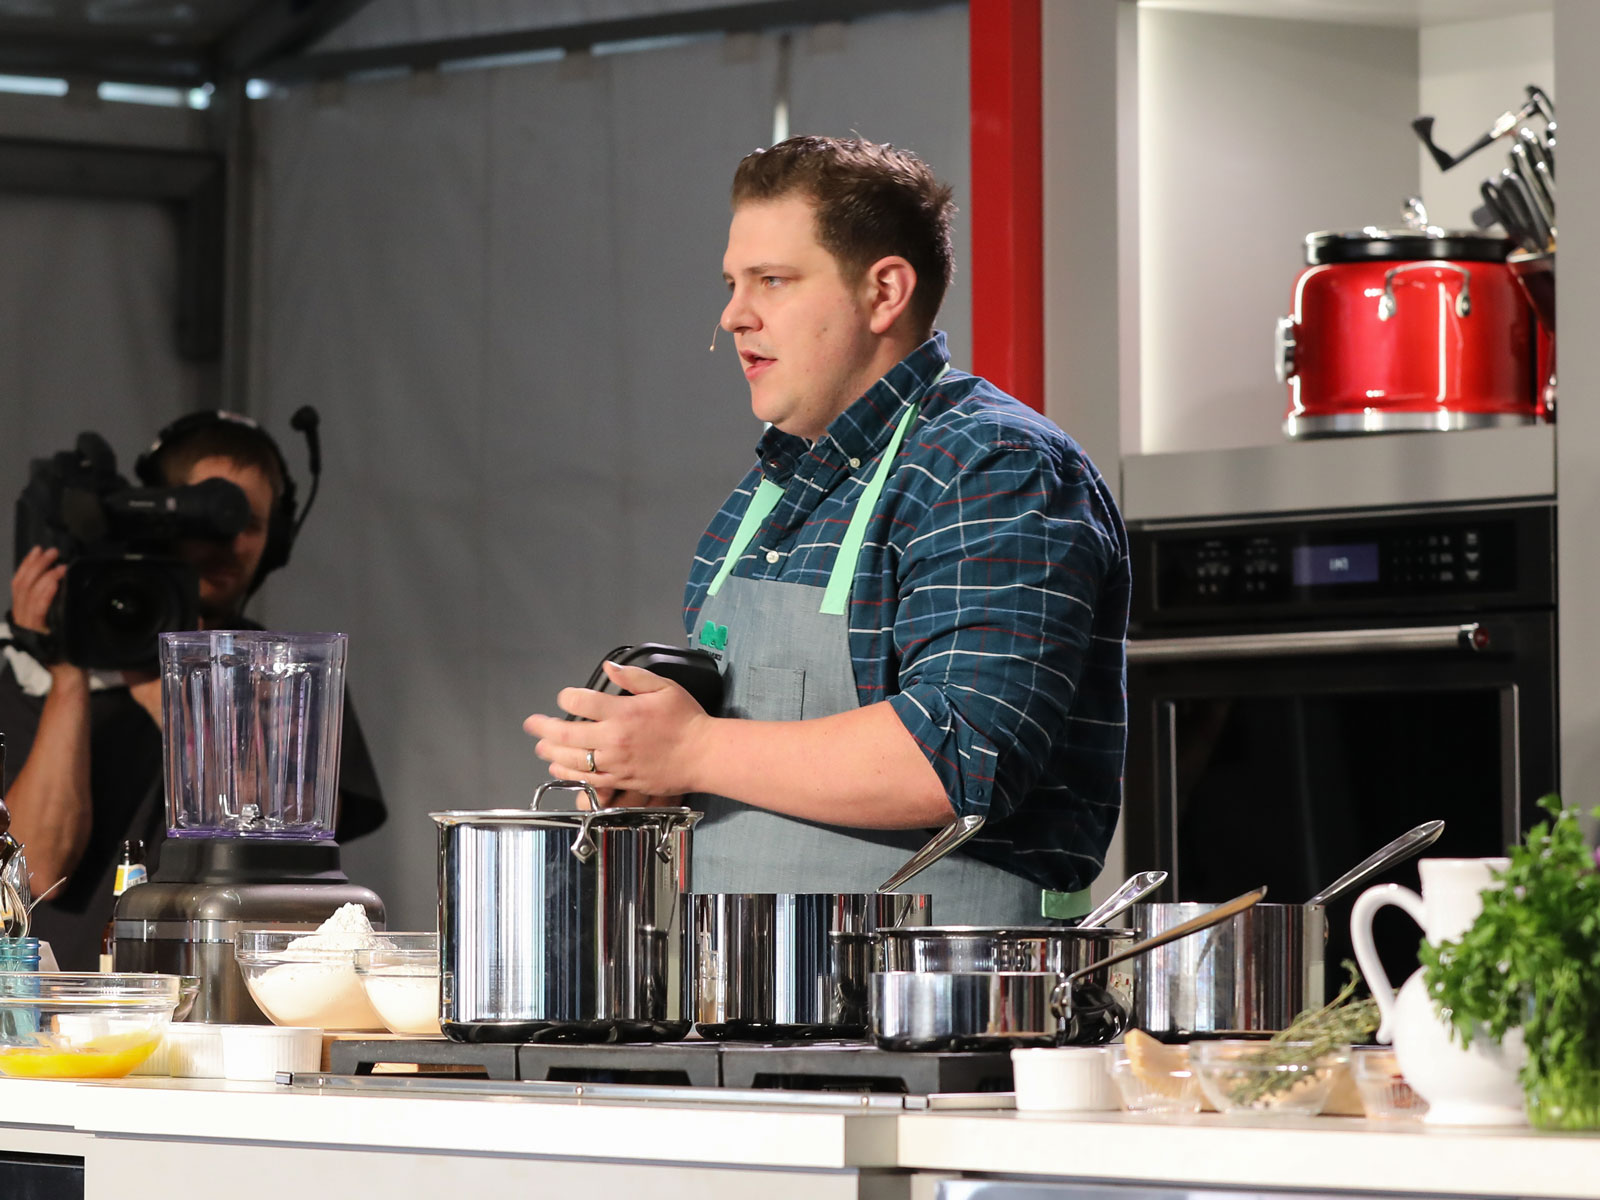 Top Chef Winner Joe Flamm Welcomes First Child, Son Luka William